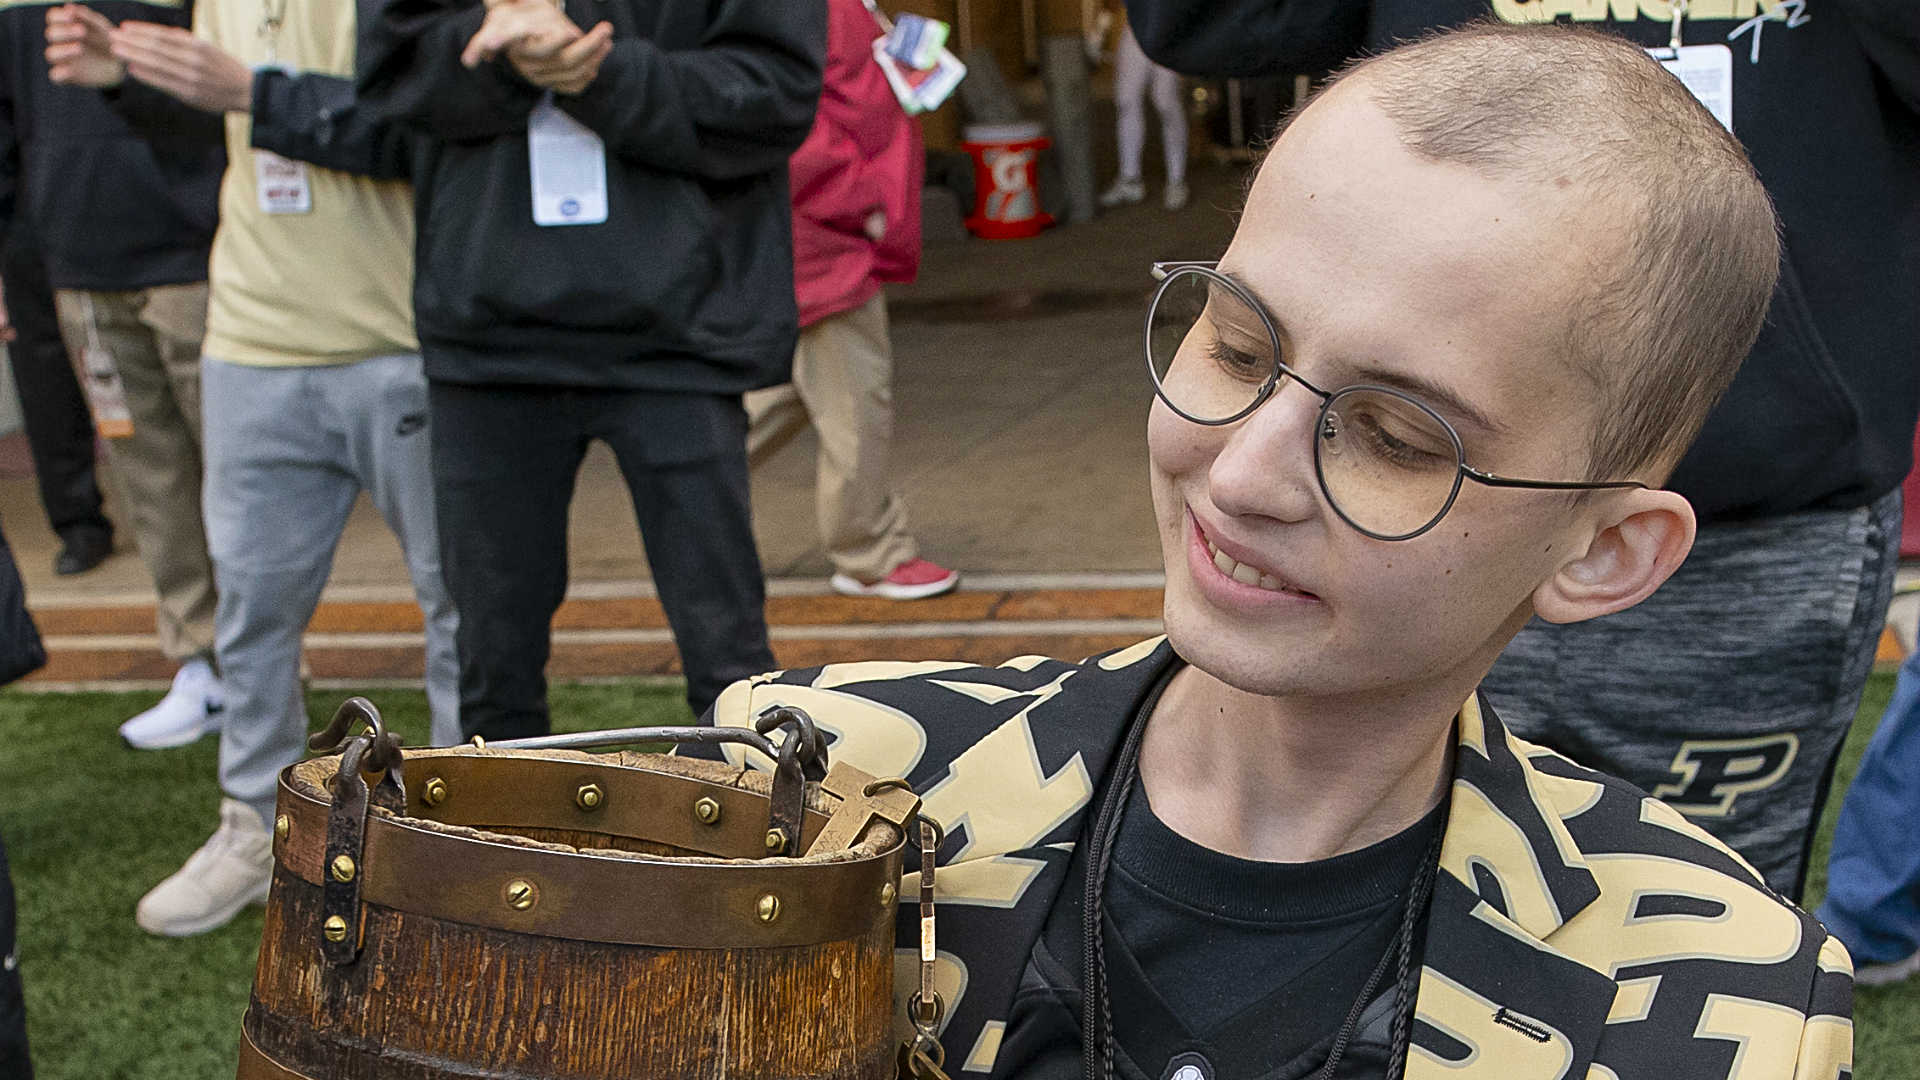 Purdue Boilermakers superfan Tyler Trent passes away